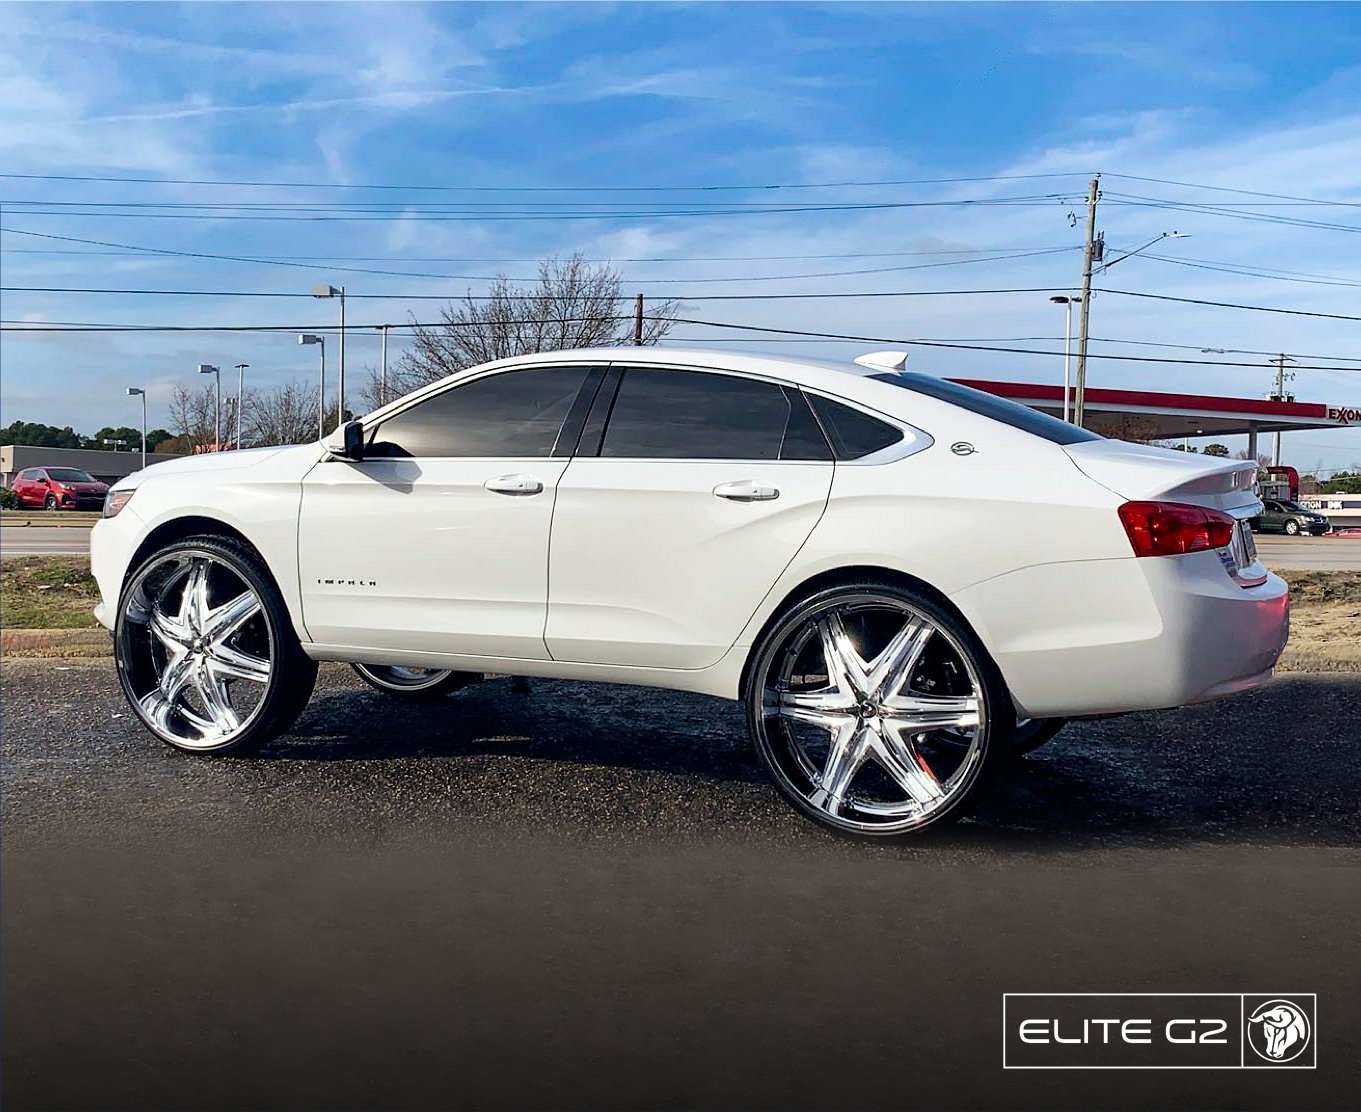 Diablo Wheels - EliteG2 on a Chevrolet Impala 30s